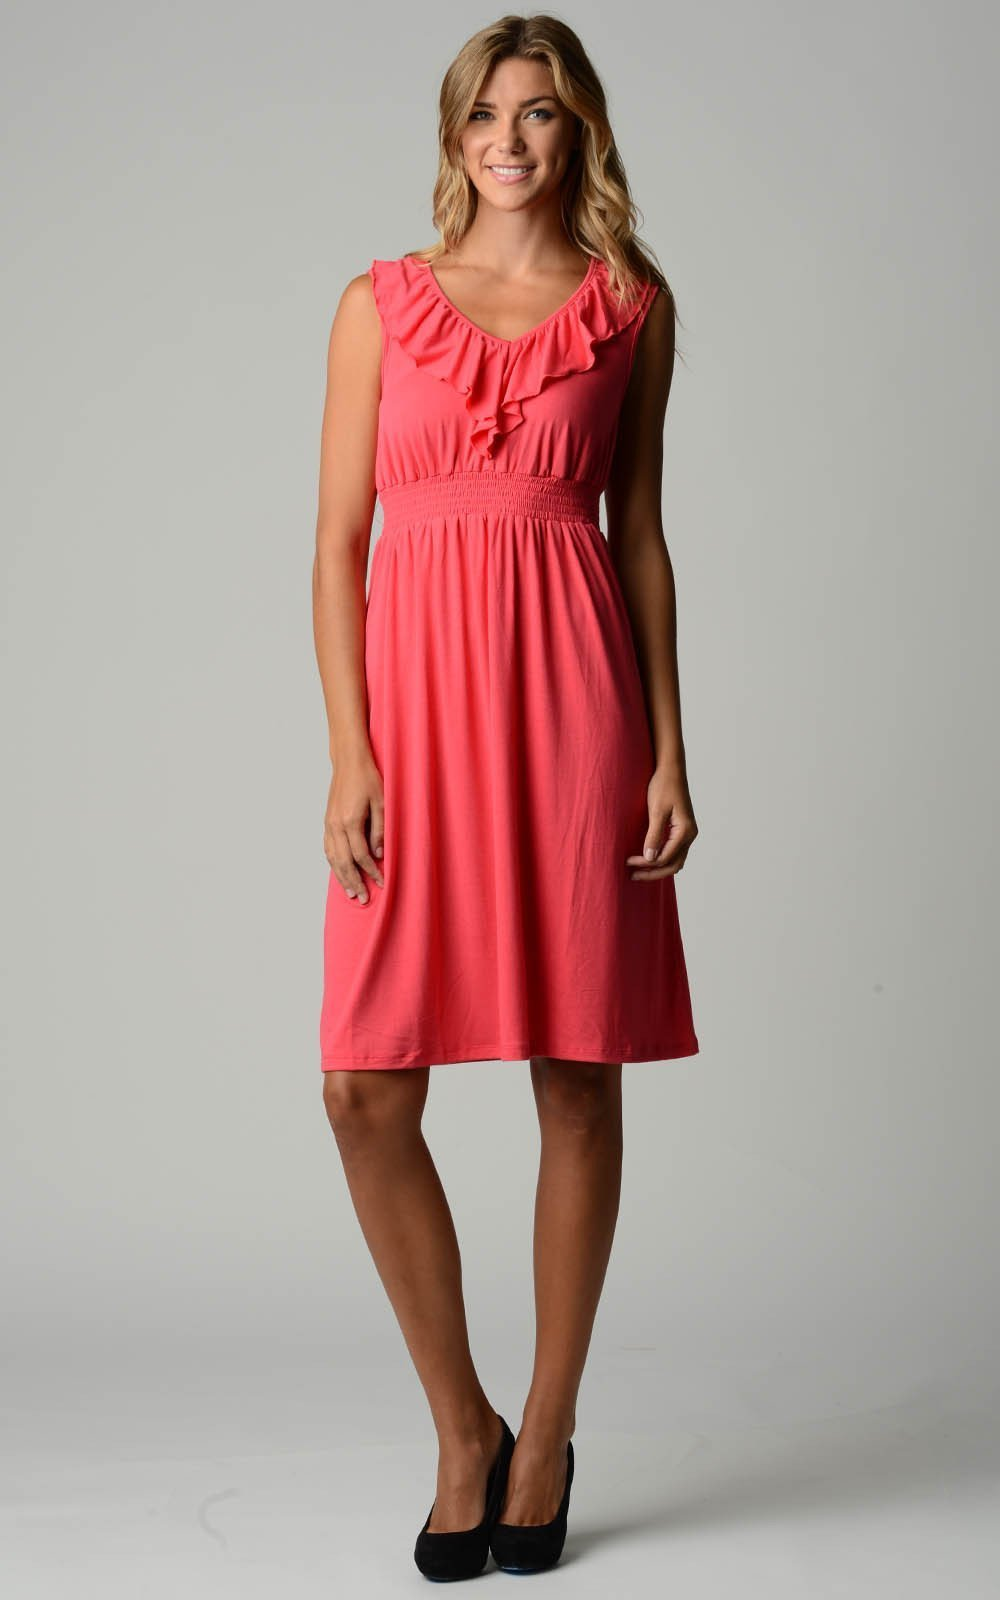 Women's Empire Waist Smocked Ruffle V-Neck Dress - Danish Fashion & Living Online Store SALE